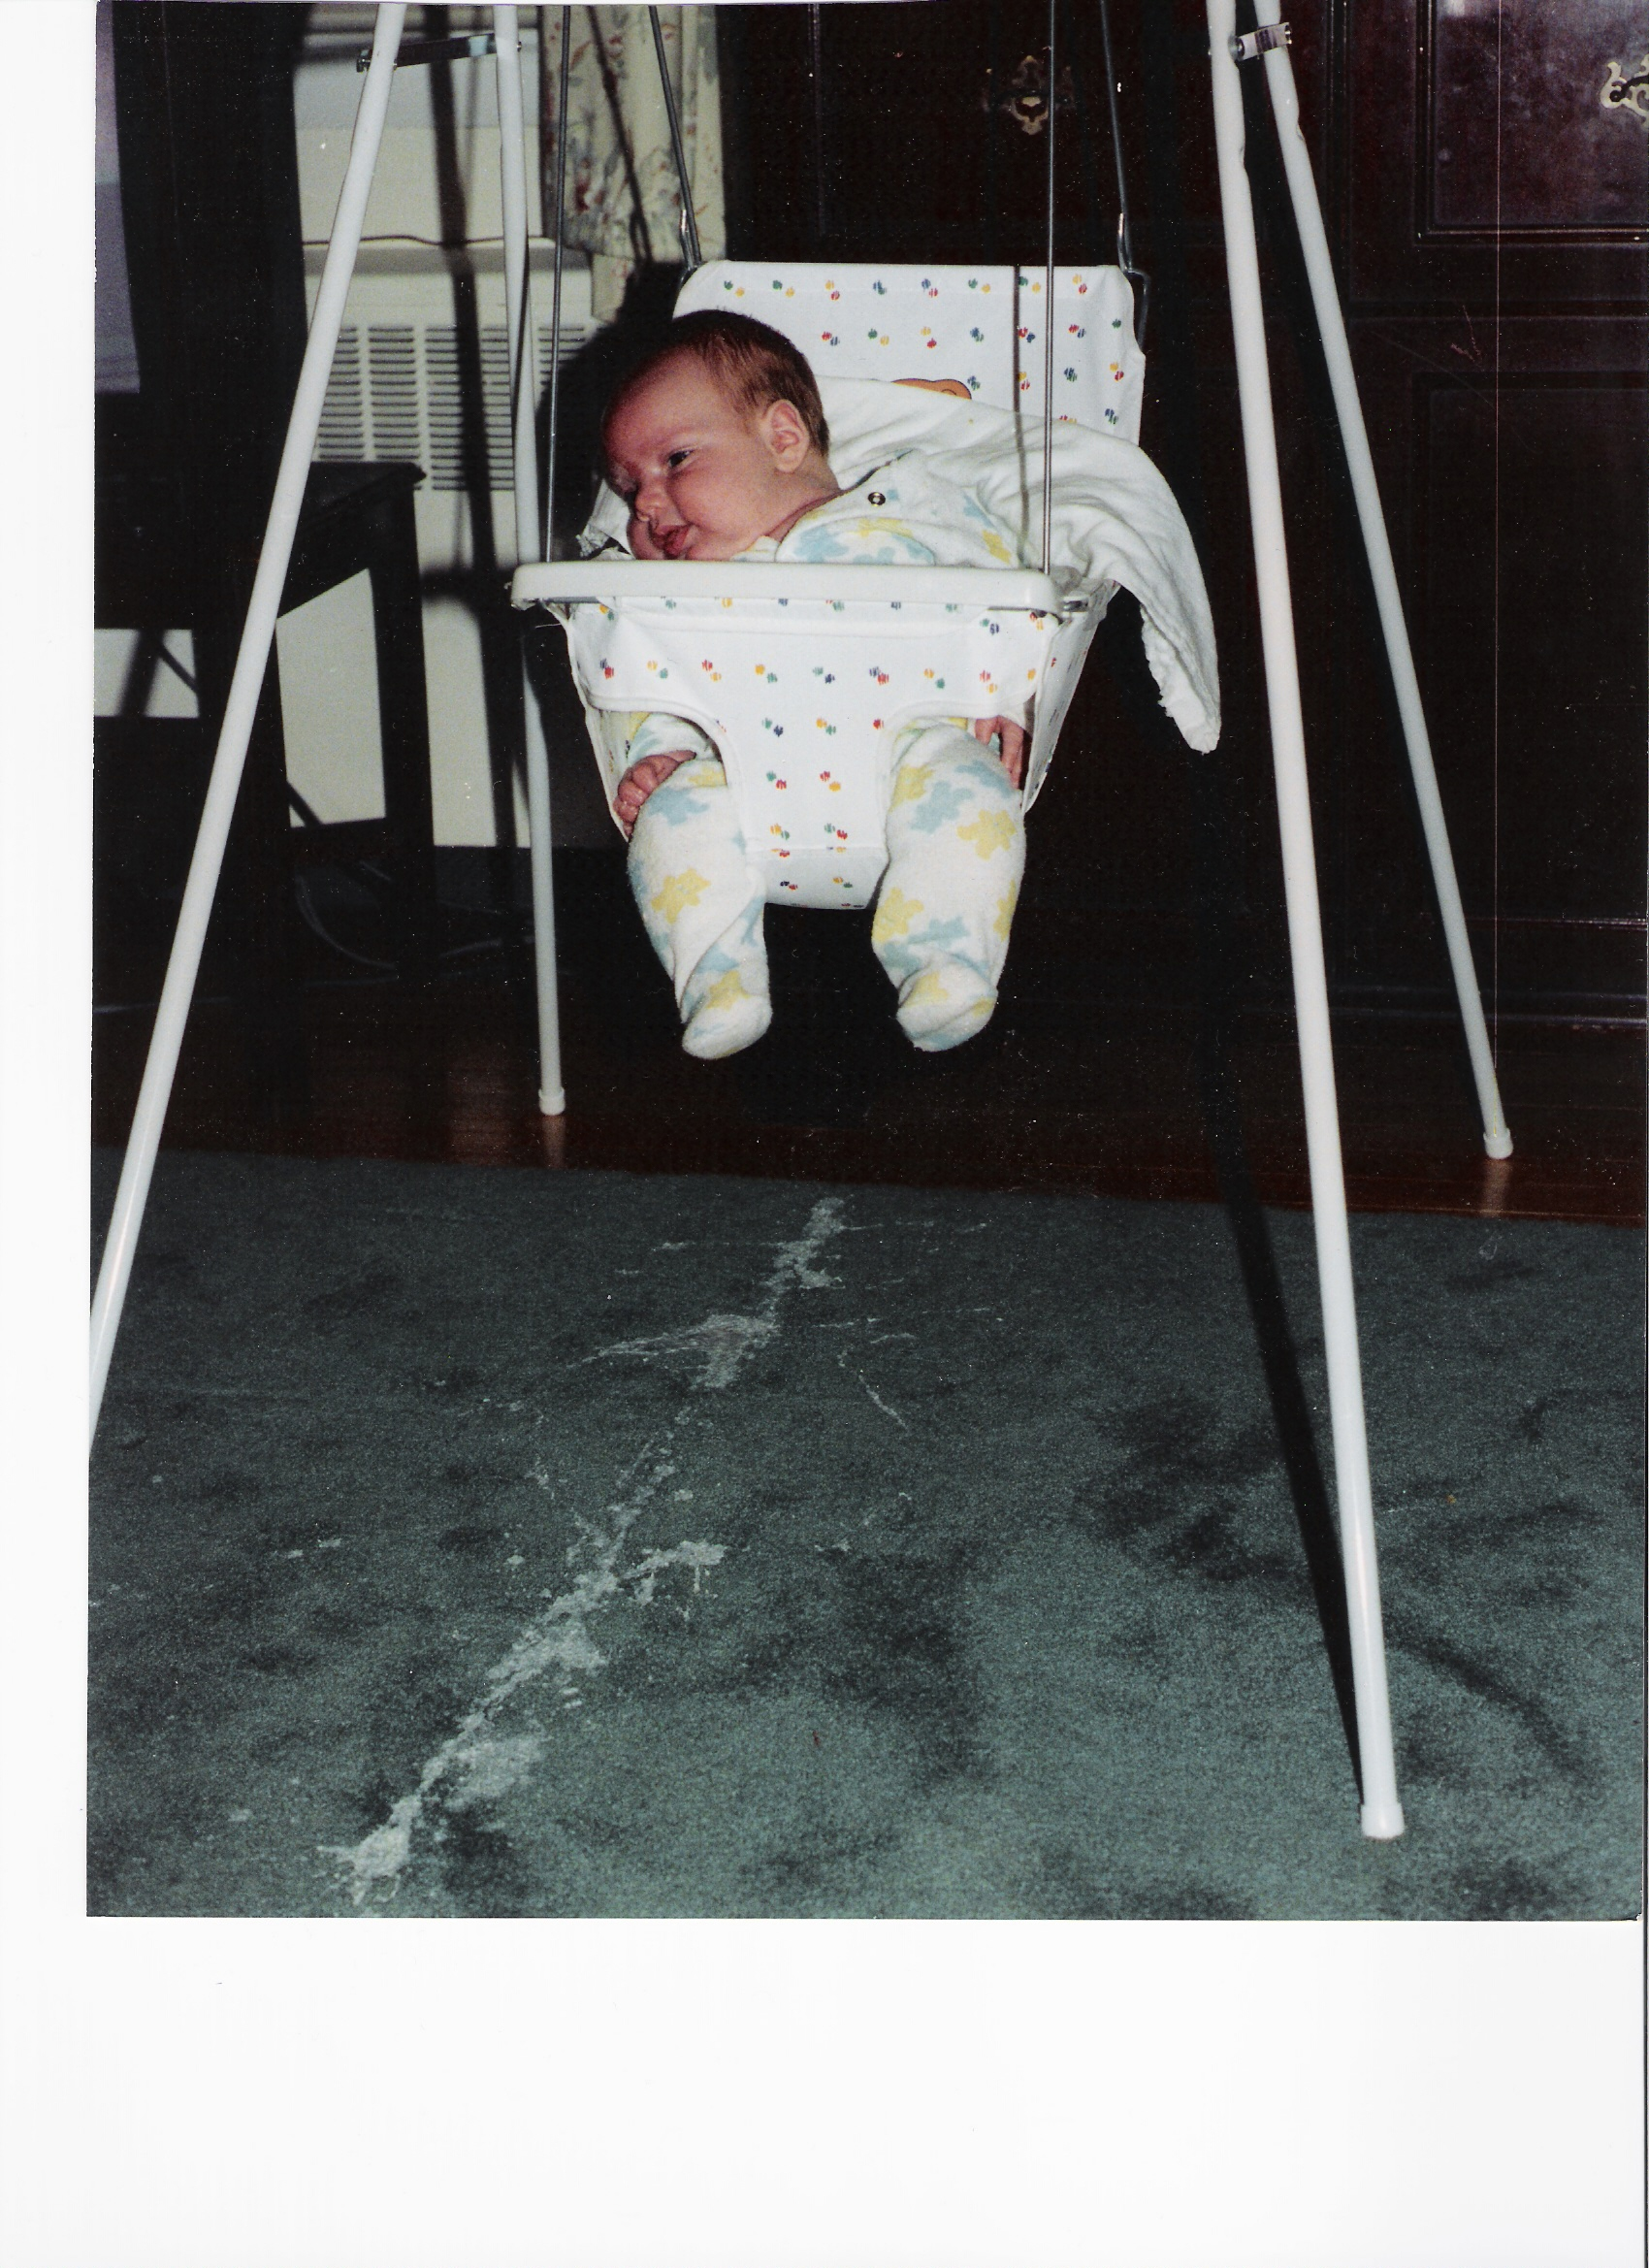 Baby in a swing with a line of vomit on the carpet below